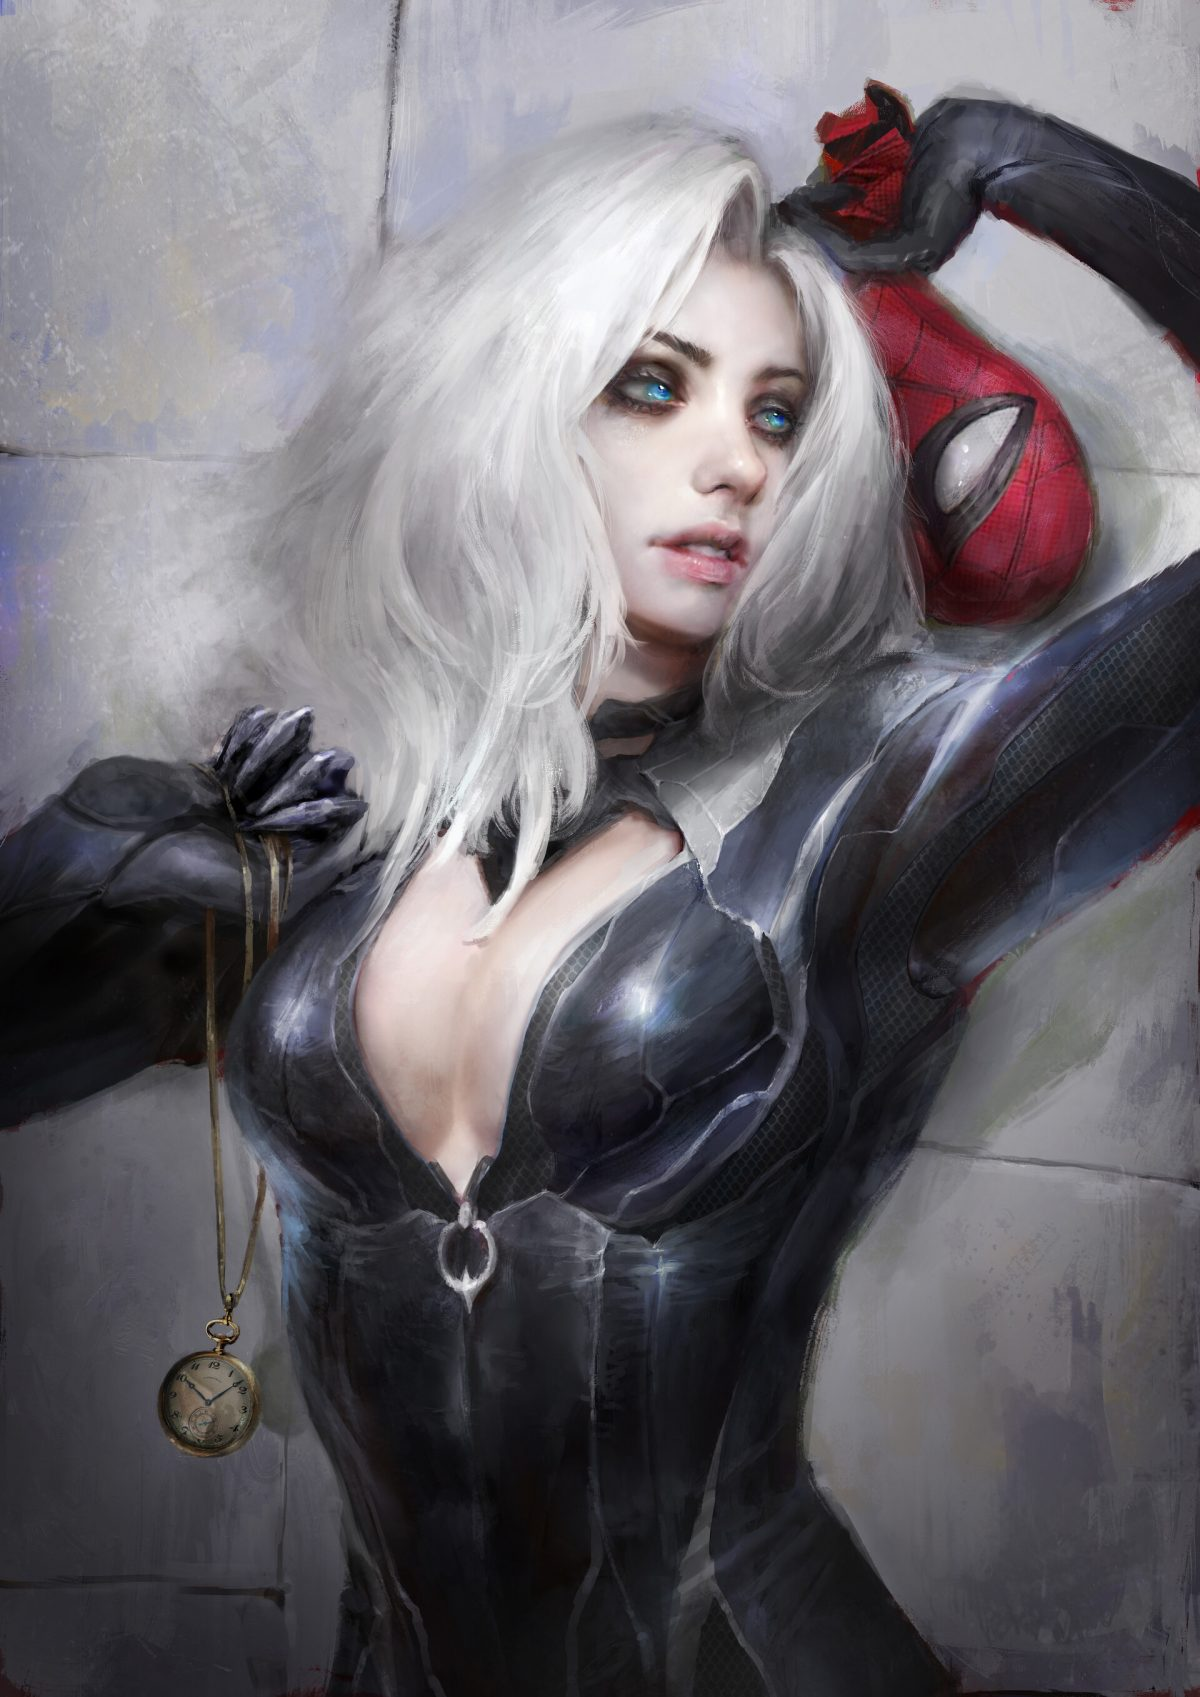 Black Cat by Daniel Kamarudin